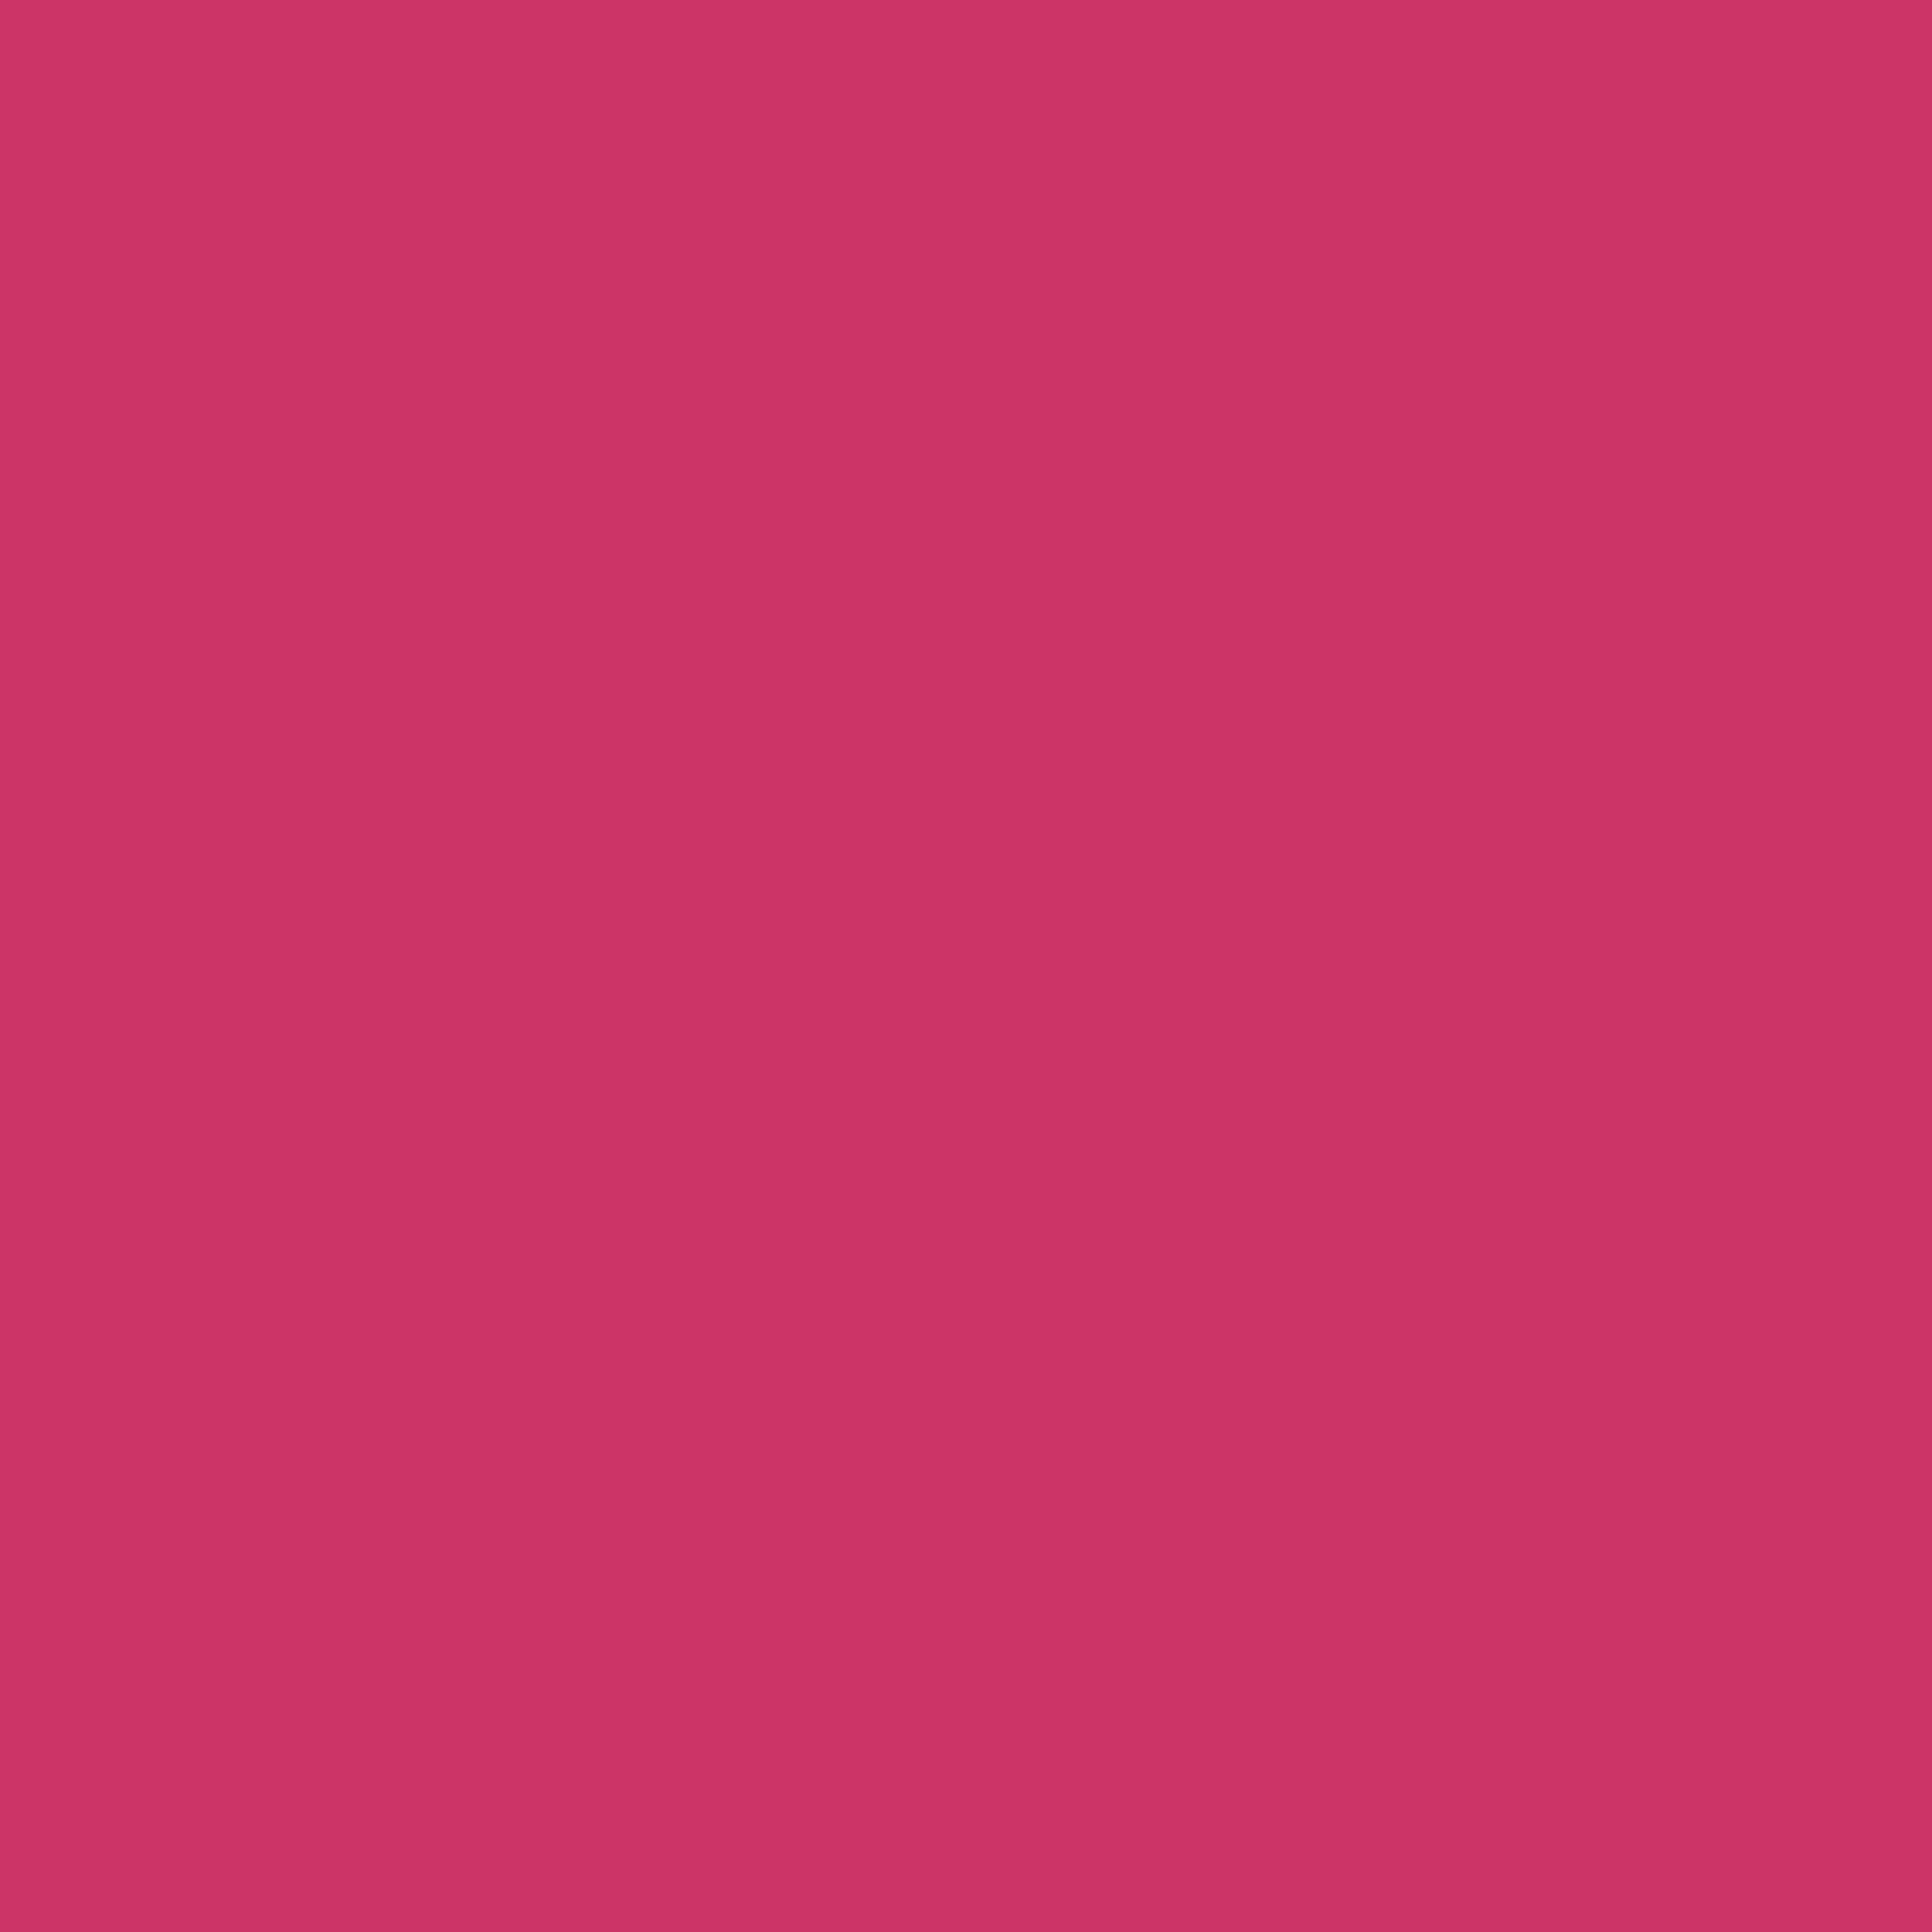 2048x2048 Steel Pink Solid Color Background